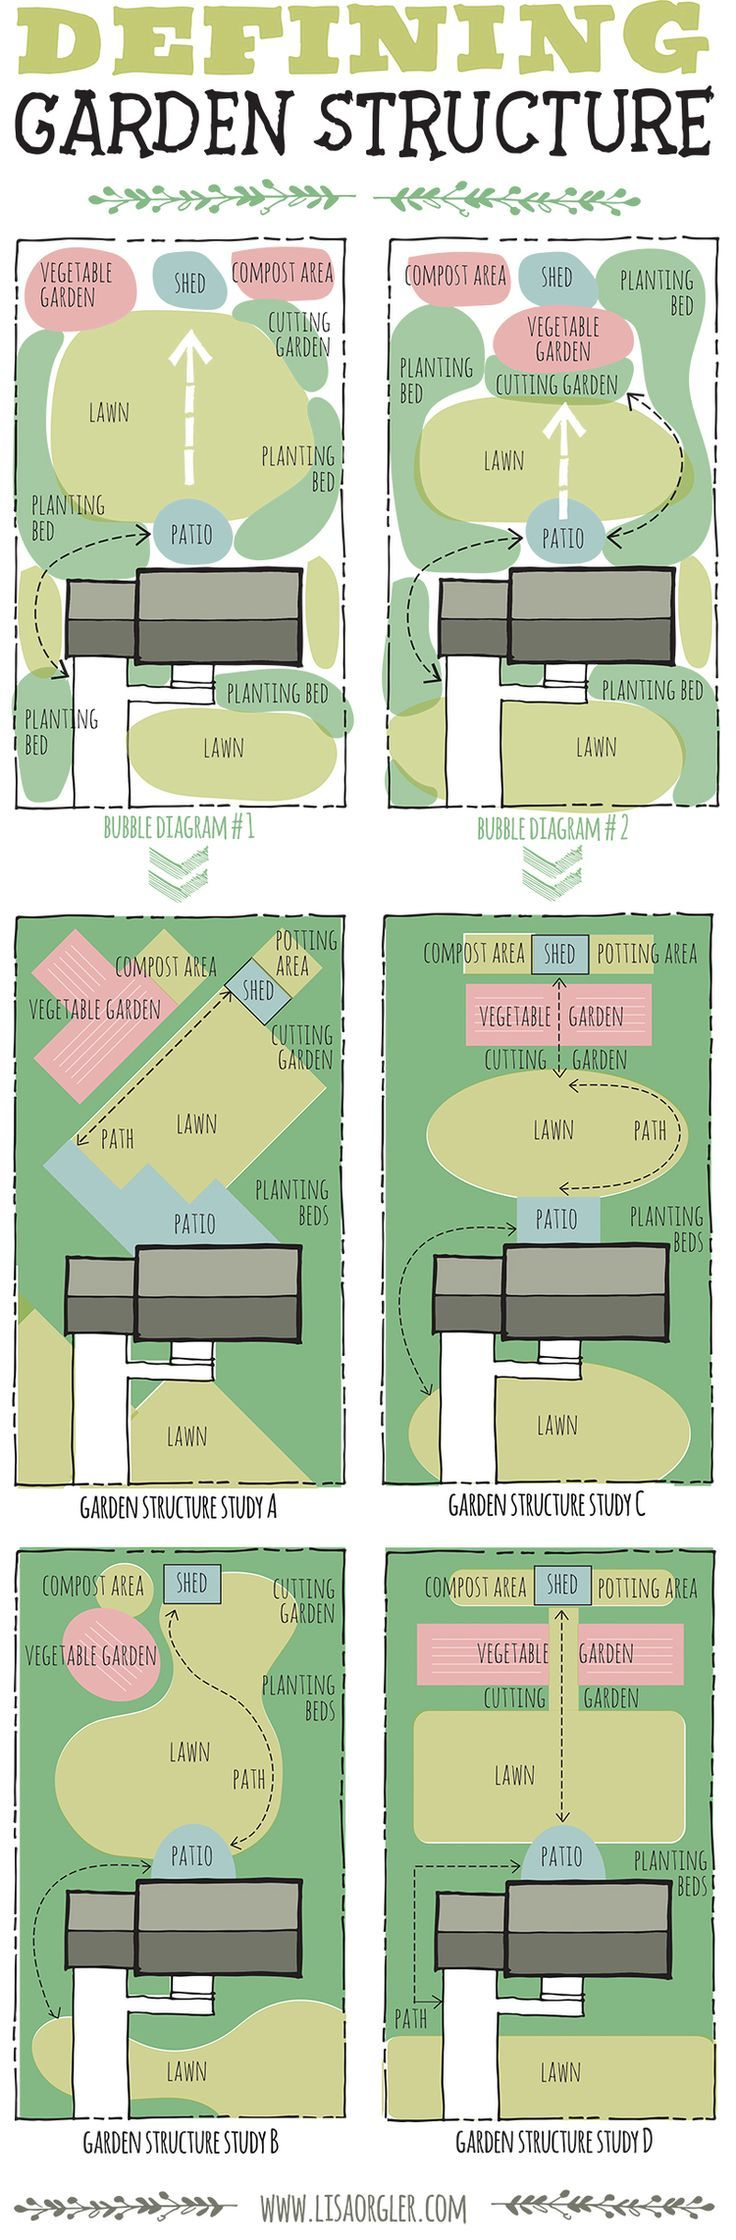 Bubble Diagrams Exploring Different Floor Plans 2 Design Is White Noise Generators Are Rather Expensive Here39s A Circuit 50 Best Front Yard Landscaping Ideas And Garden Designs Gardens Rh Pinterest Com